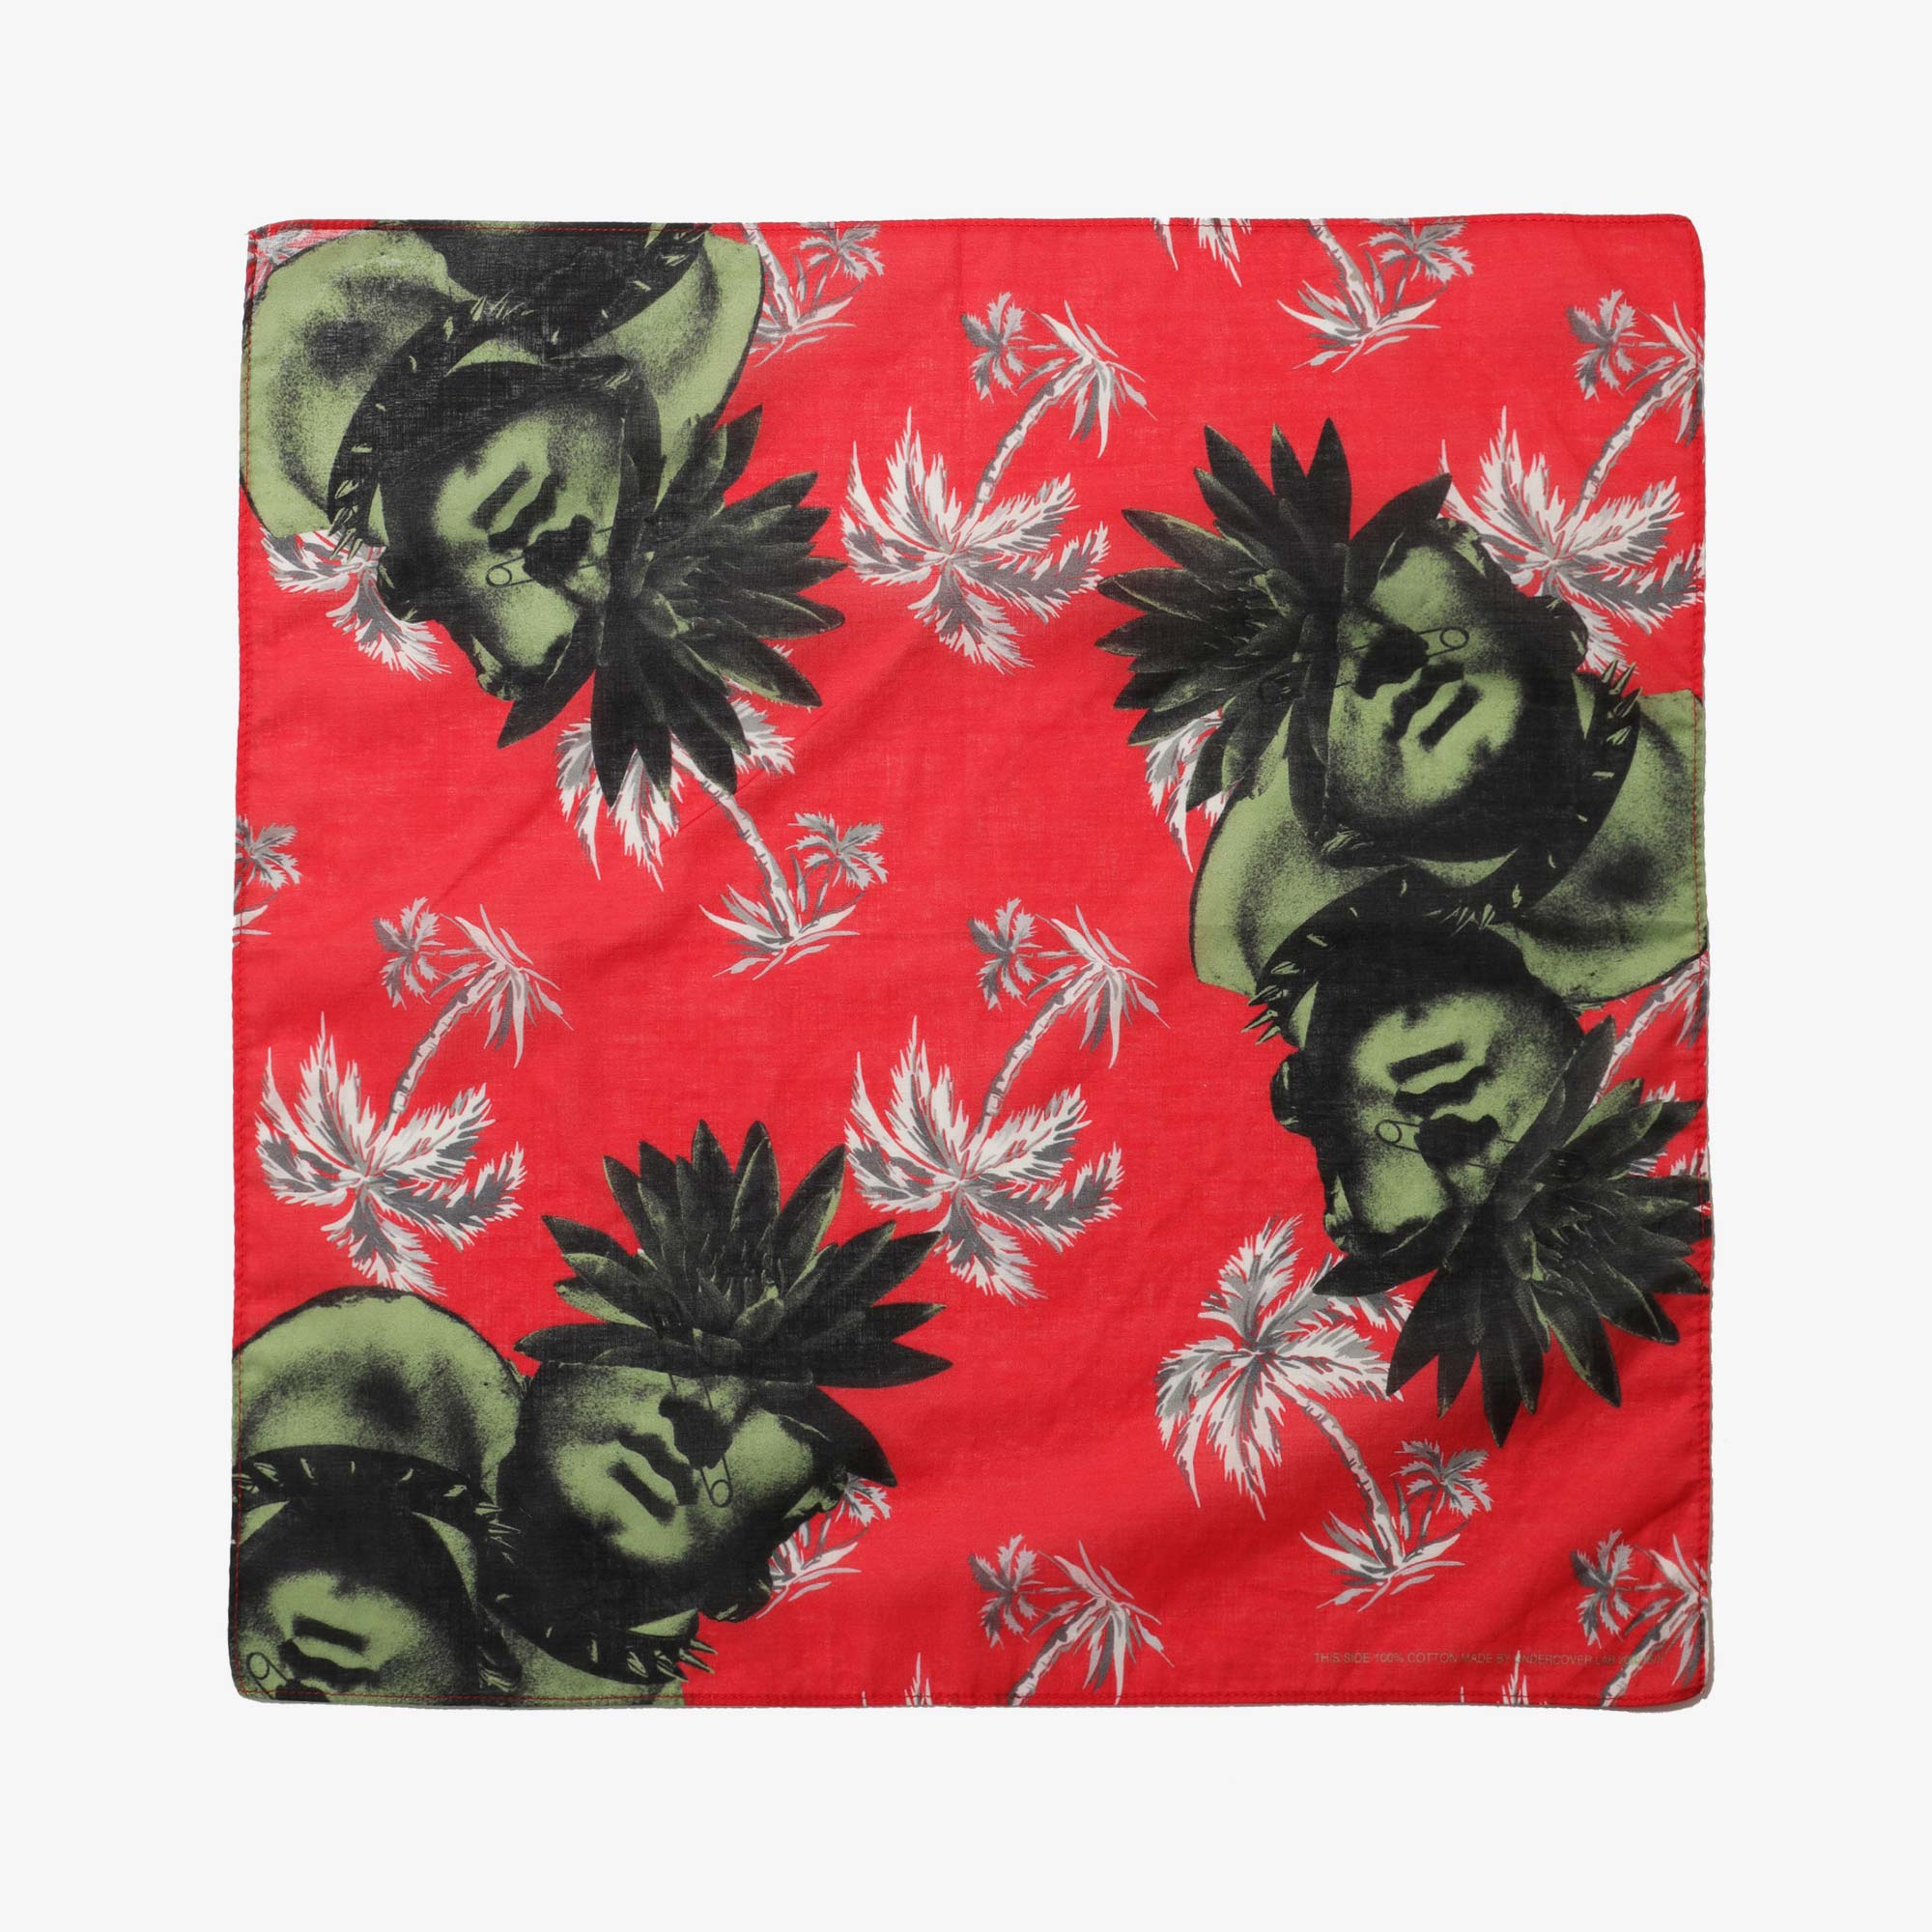 Undercover Faces Pocket Square UC1A4M01-2 - Red Base 1